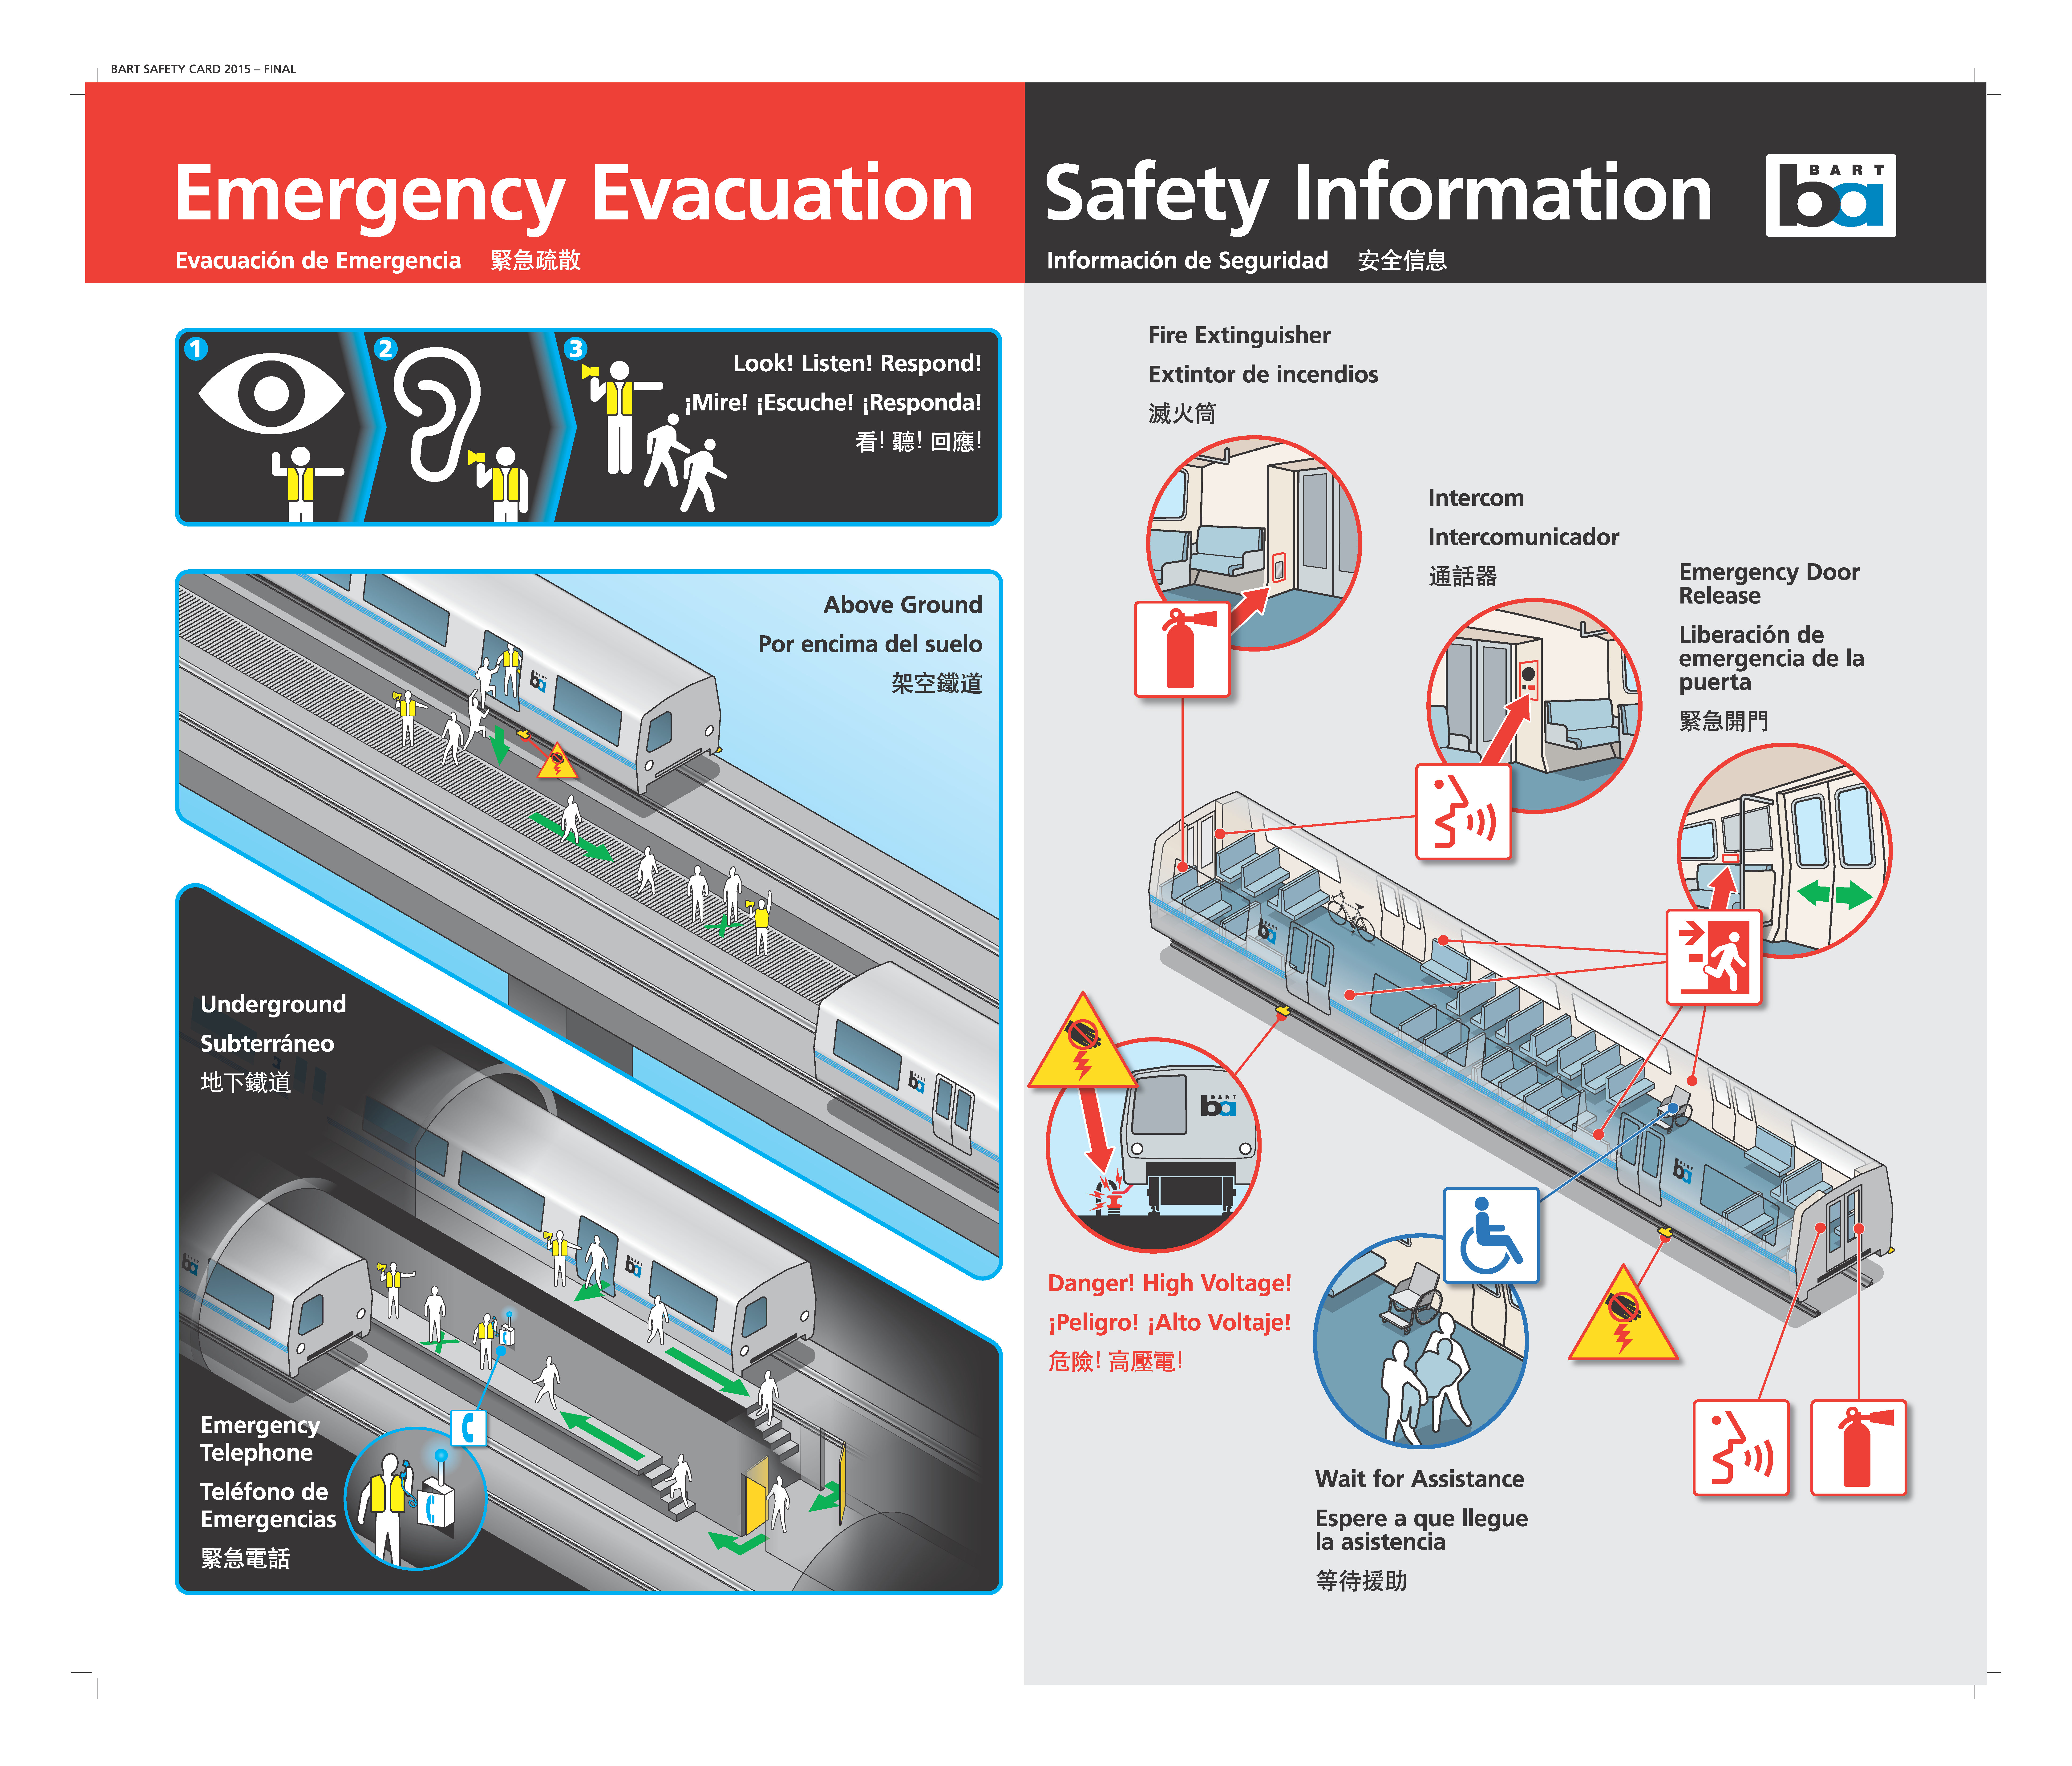 BART Safety Card